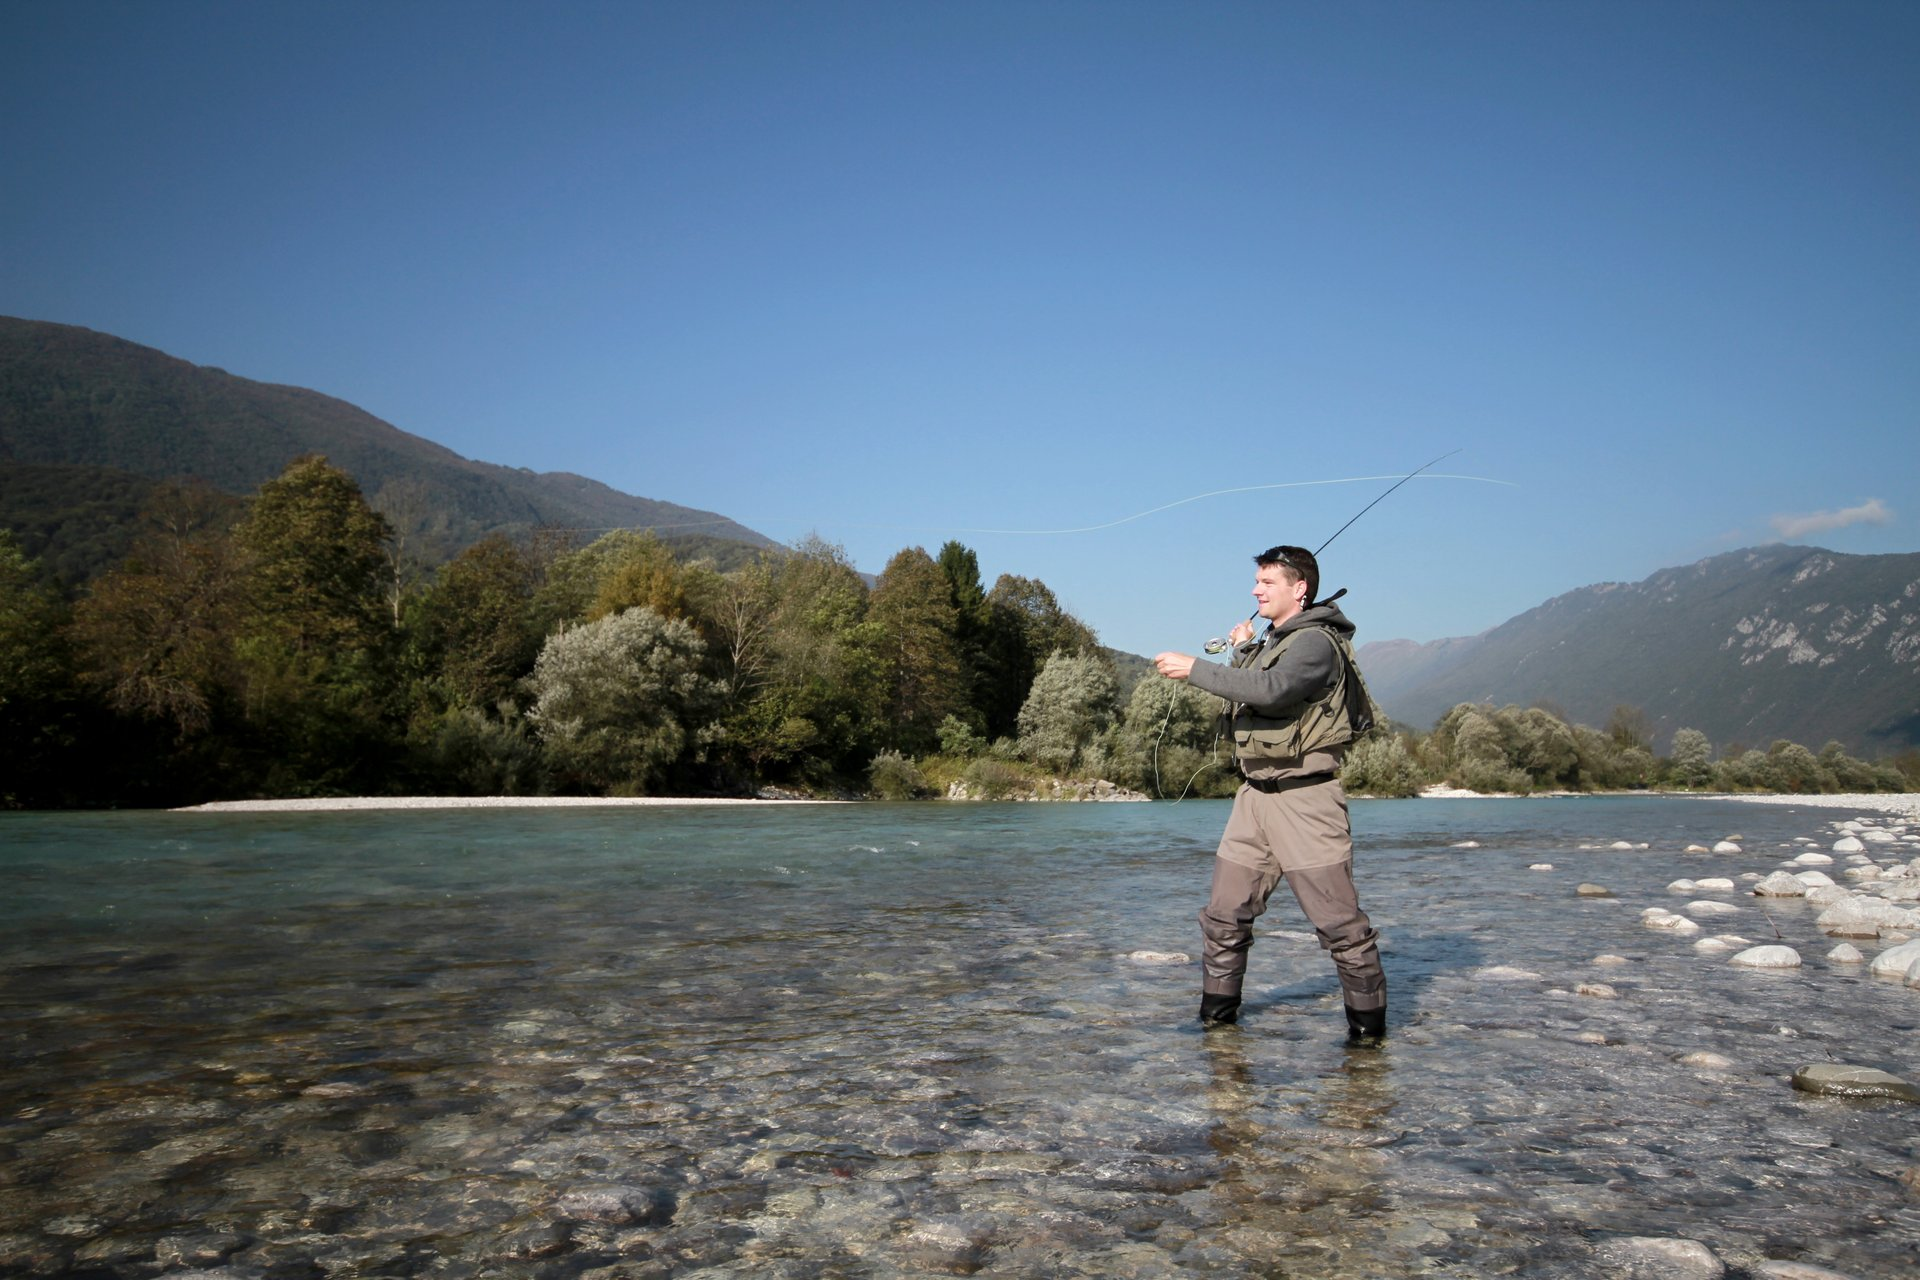 Angling in Slovenia 2019 - Best Time